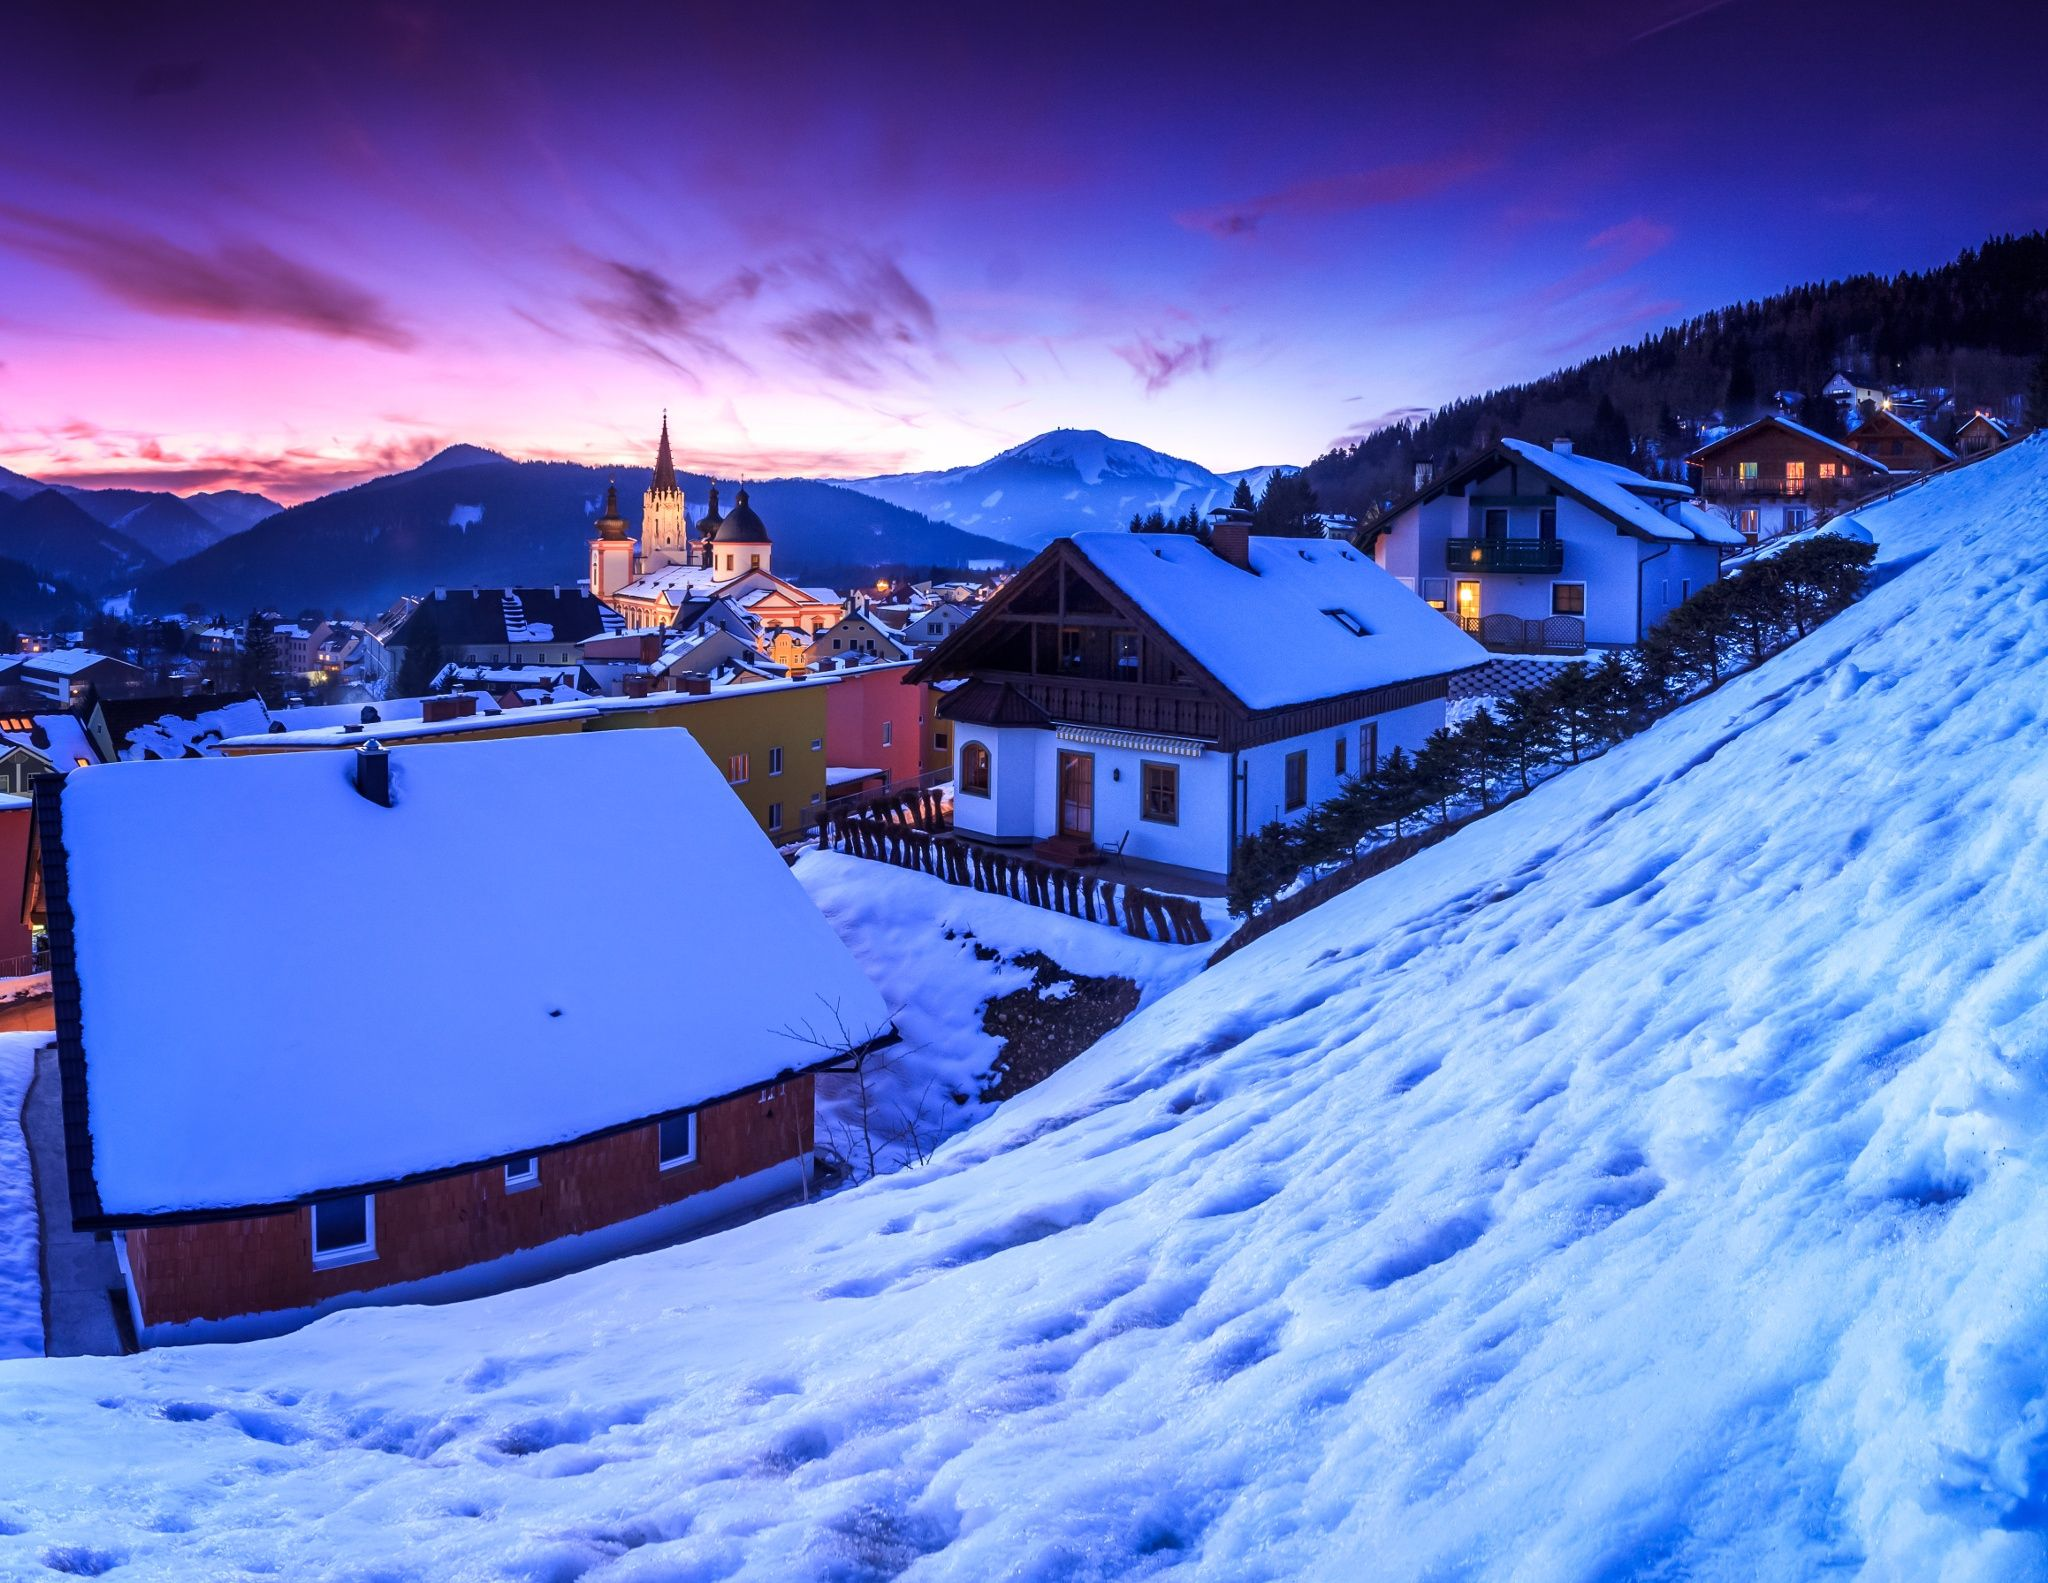 Mariazell by Zoltan Duray / 500px